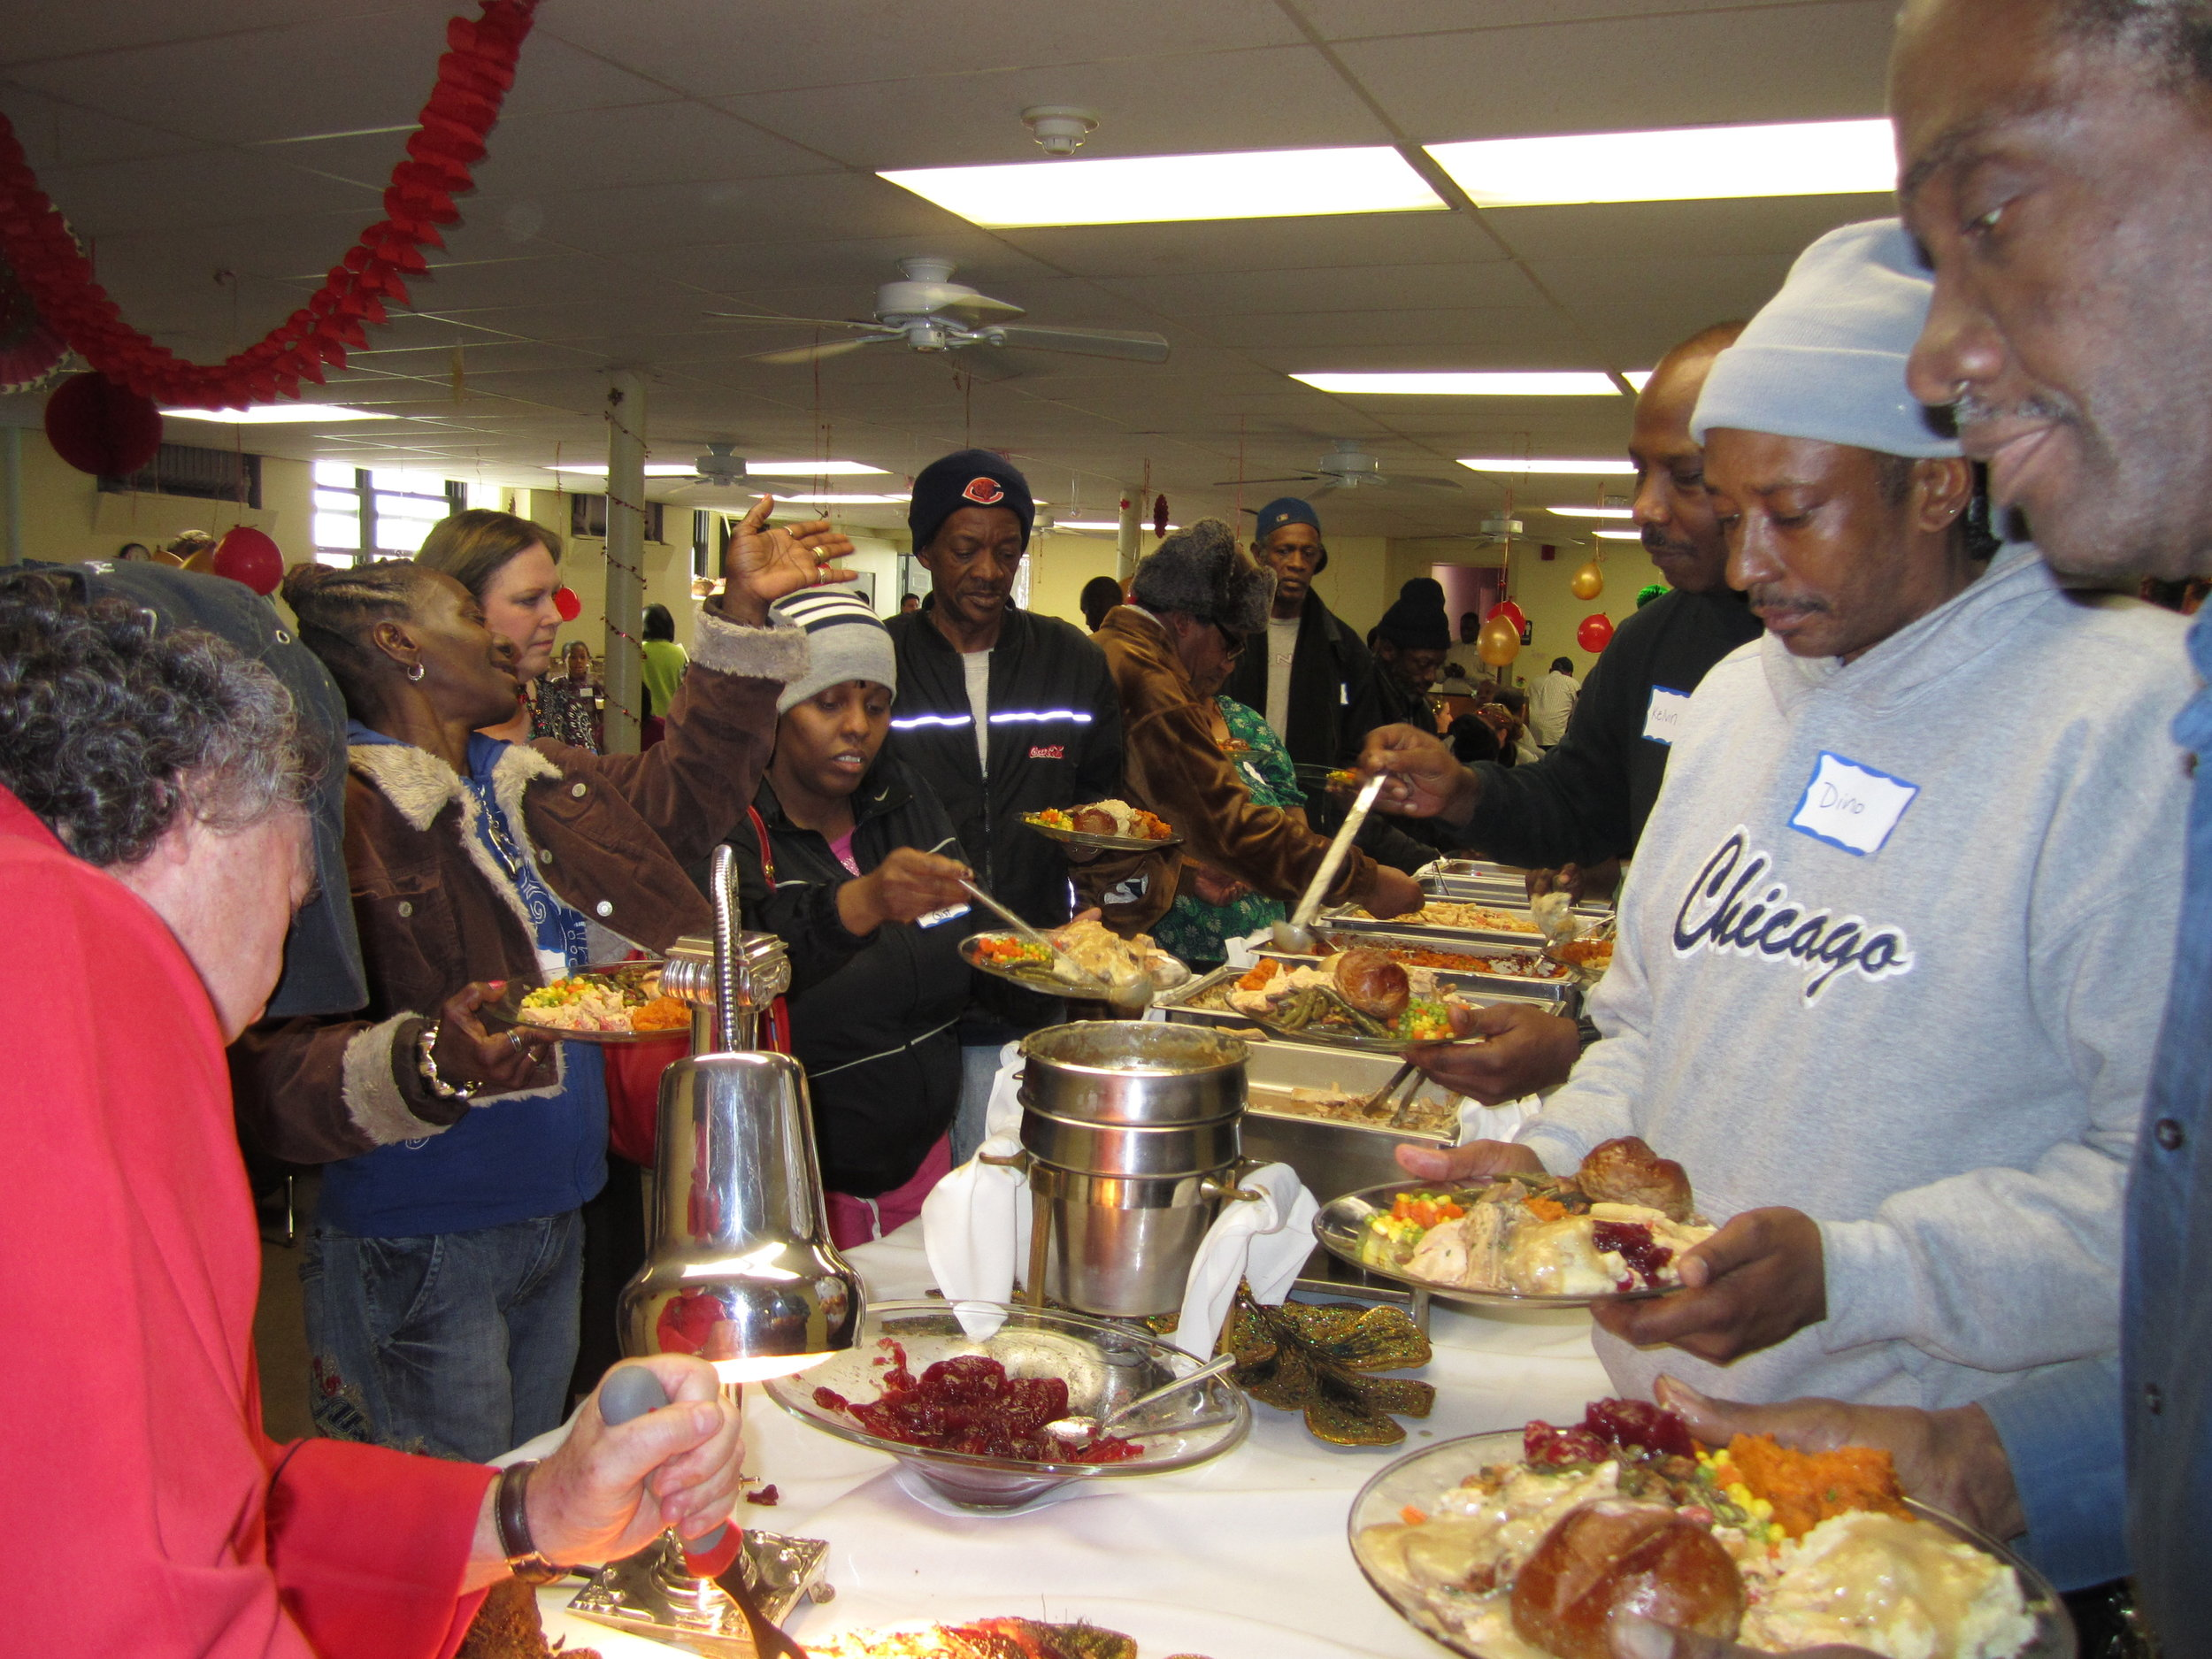 BVC Chicago 2011 Christmas reception for homeless.jpg